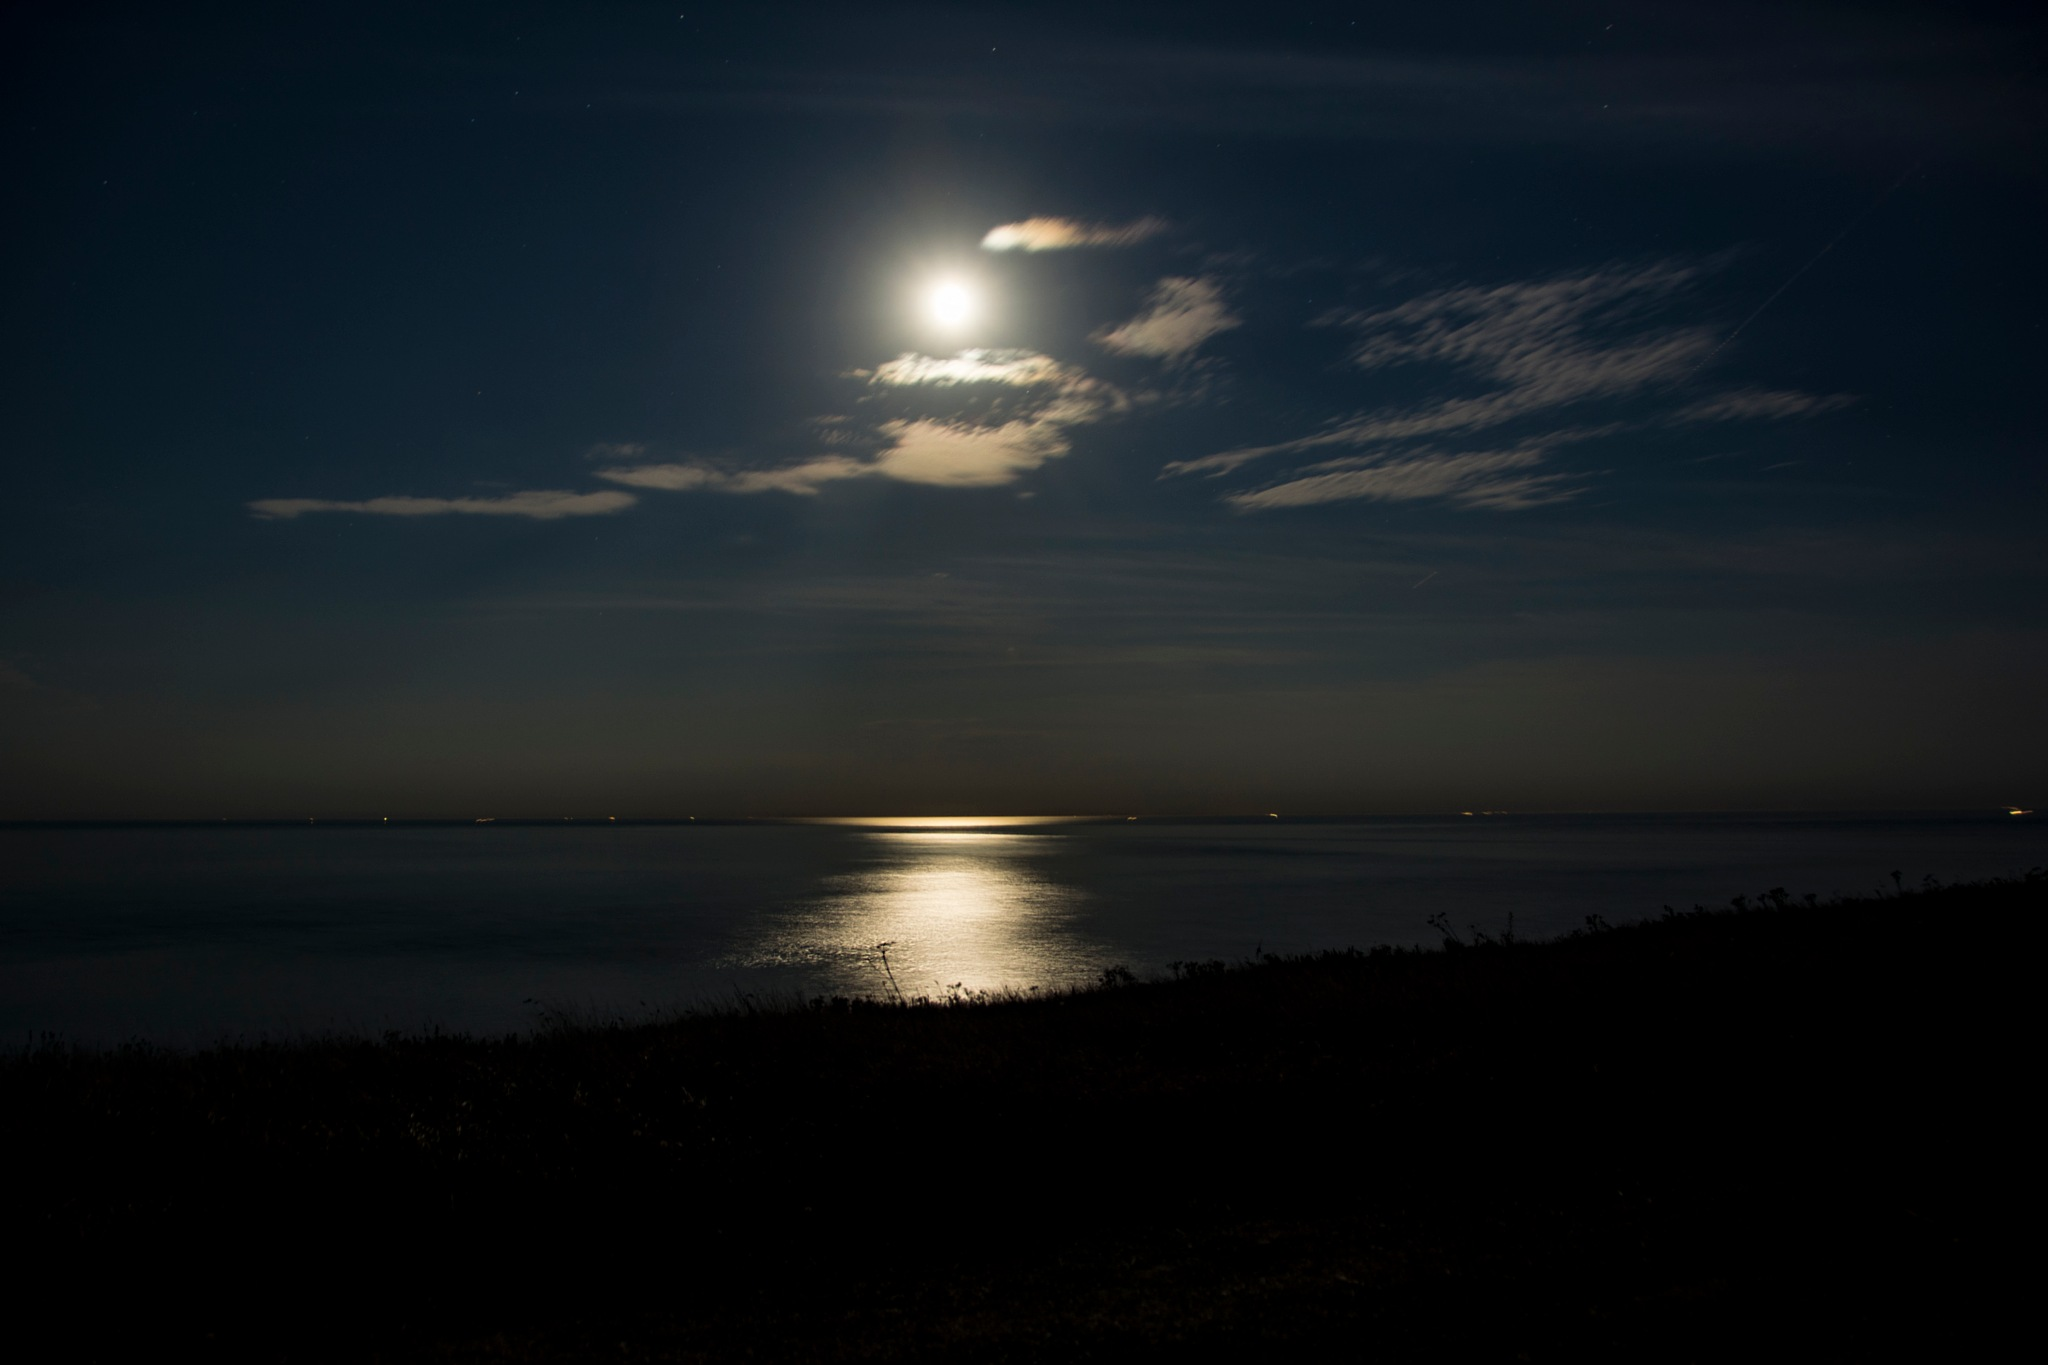 Moonglow by Tom P